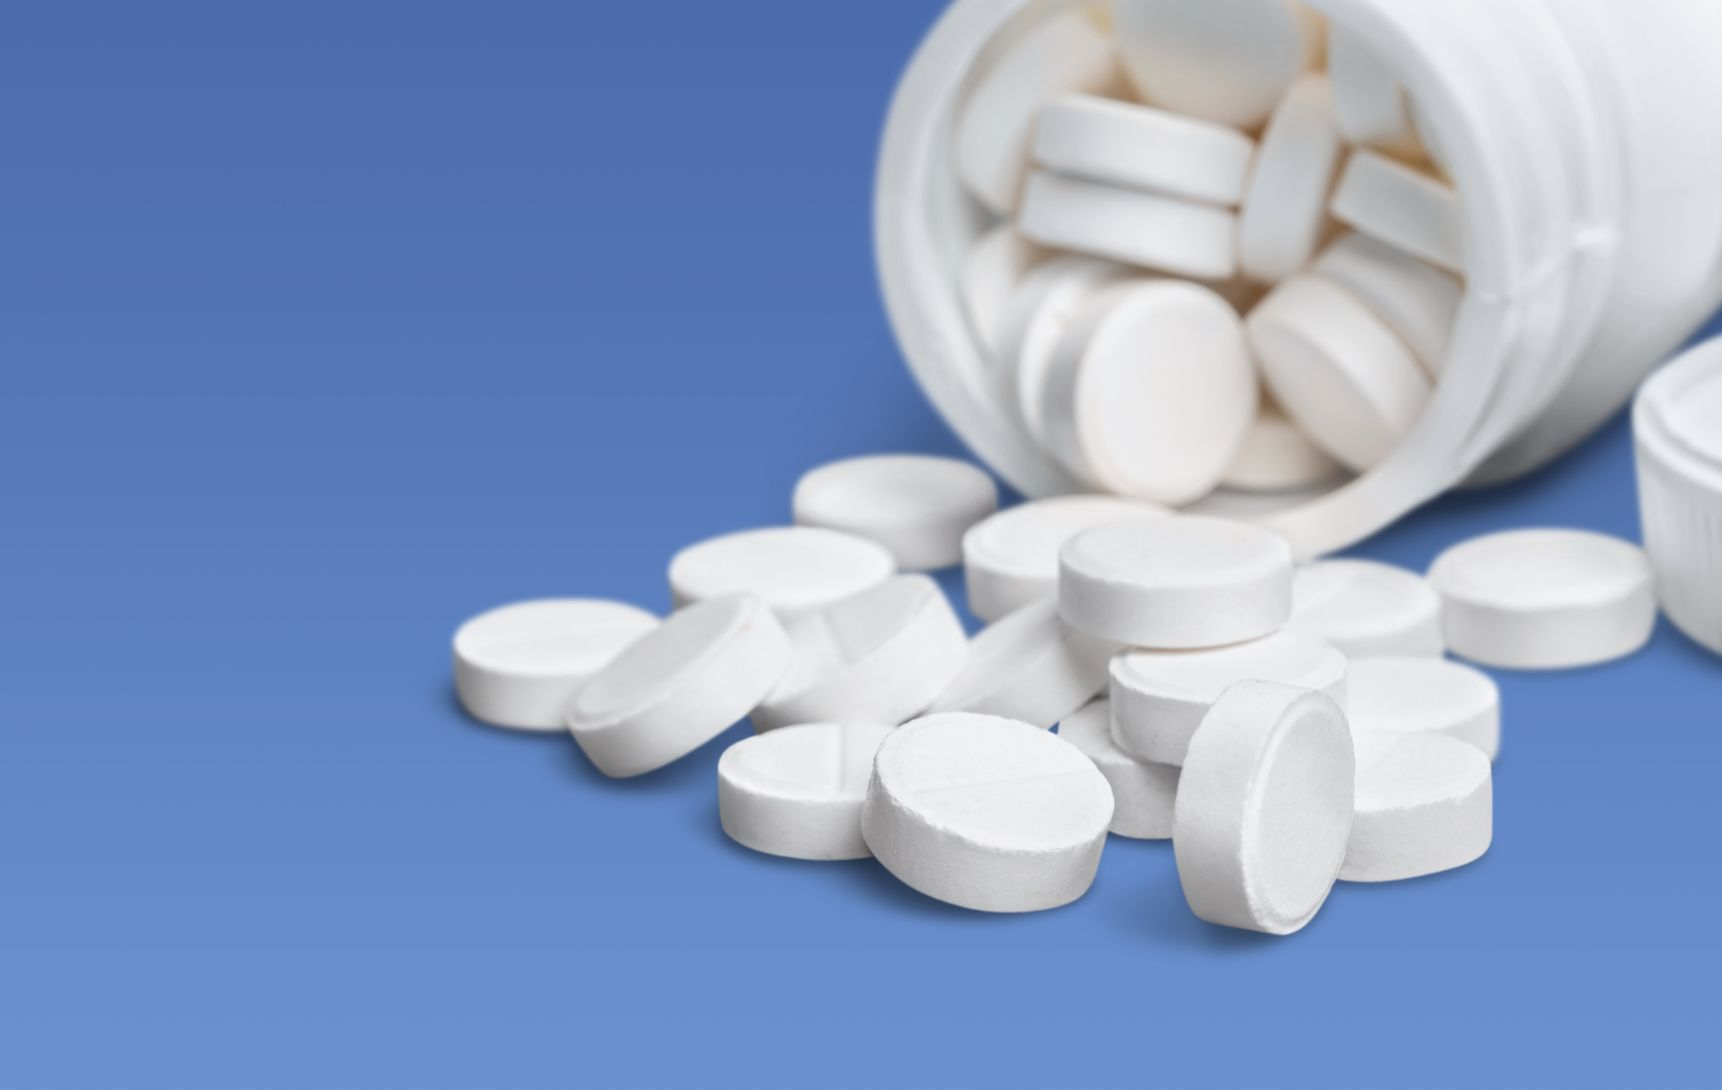 aspirin less effective than P2Y12 inhibitors for secondary prevention